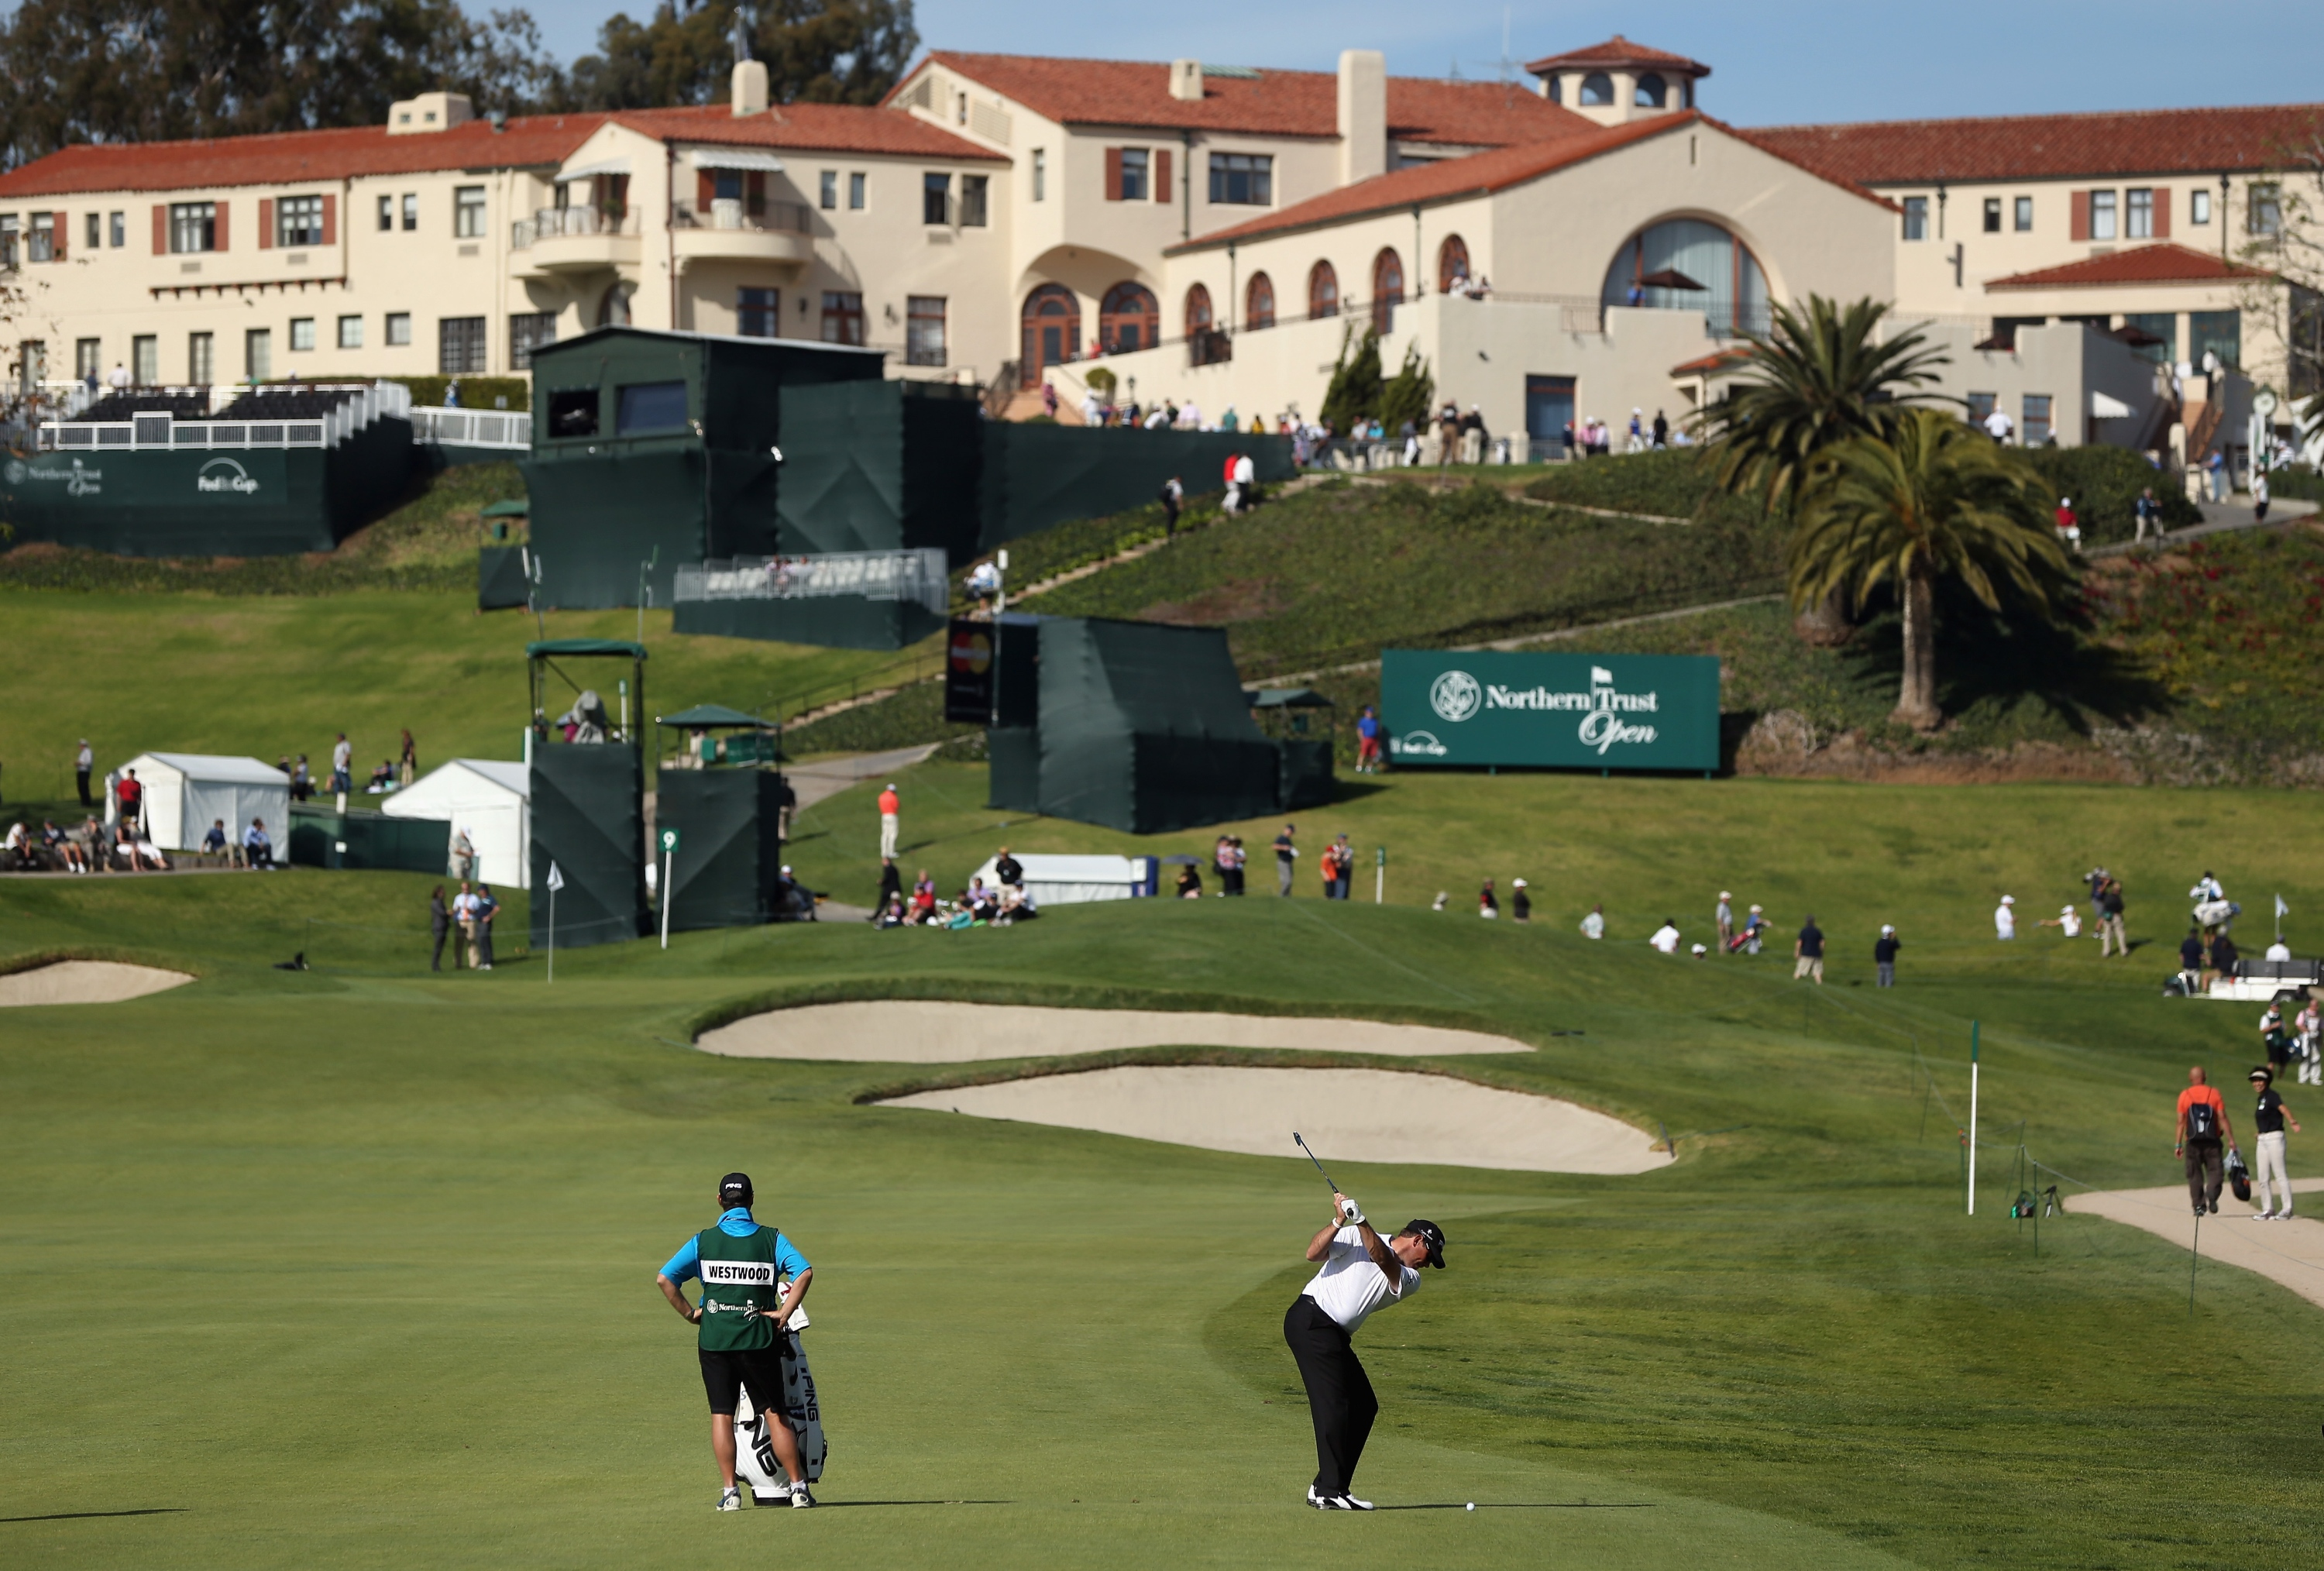 Northern Trust Open - Preview Day 3